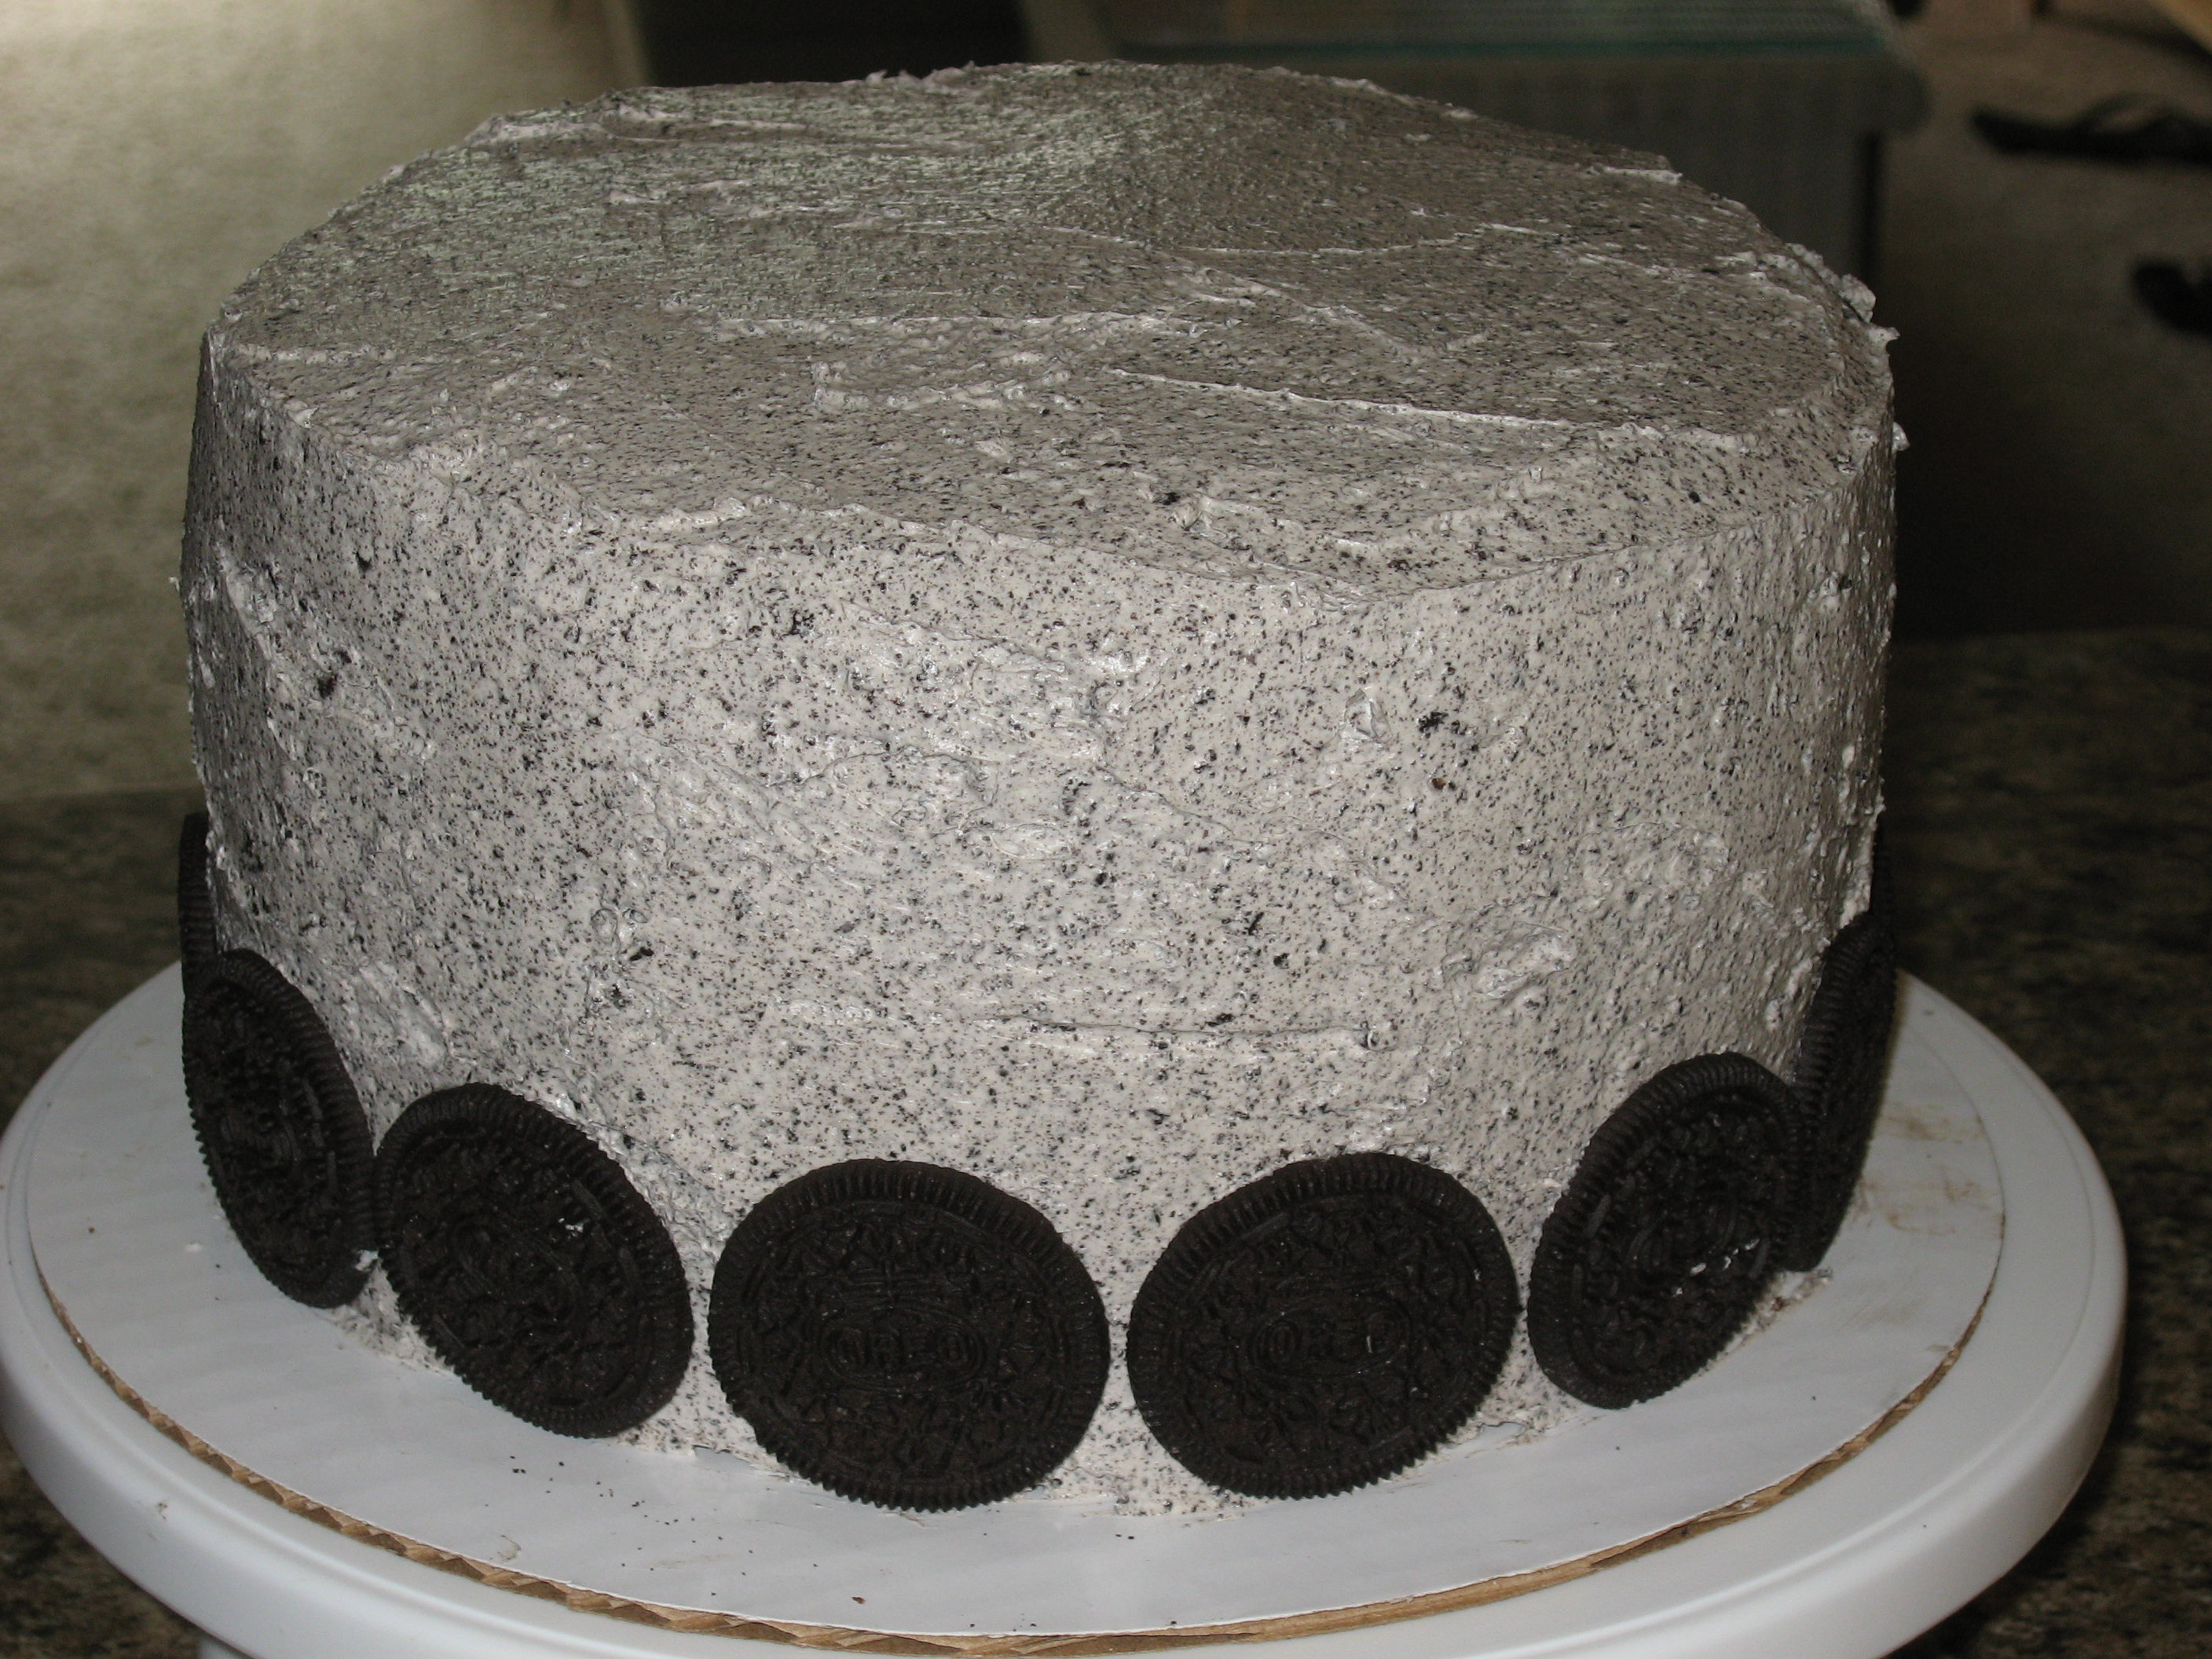 Oreo Cake | It All Started With Mac And Cheese